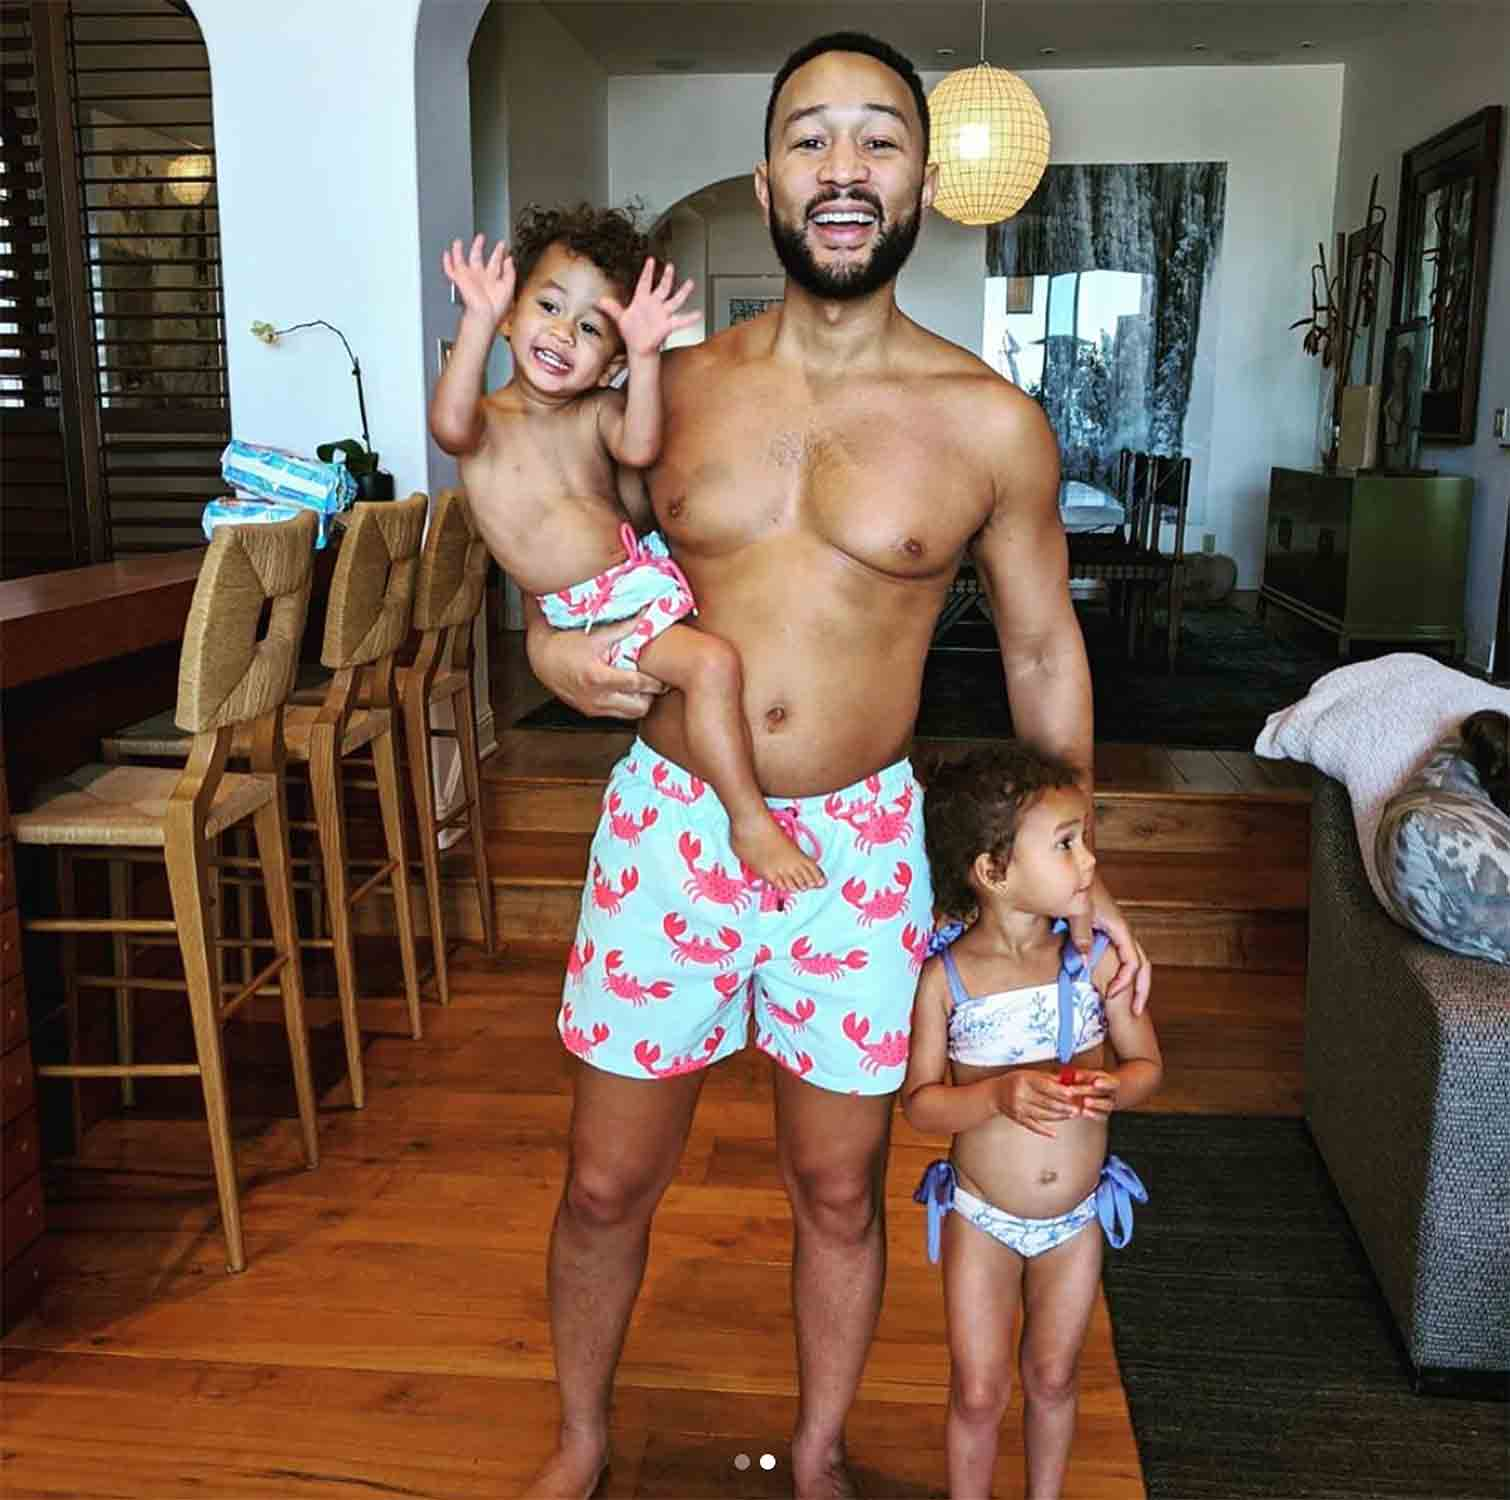 John Legend, Son Miles Rock Crustacean-Print Swim Trunks as Chrissy Teigen Jokes, 'I Have Crabs'